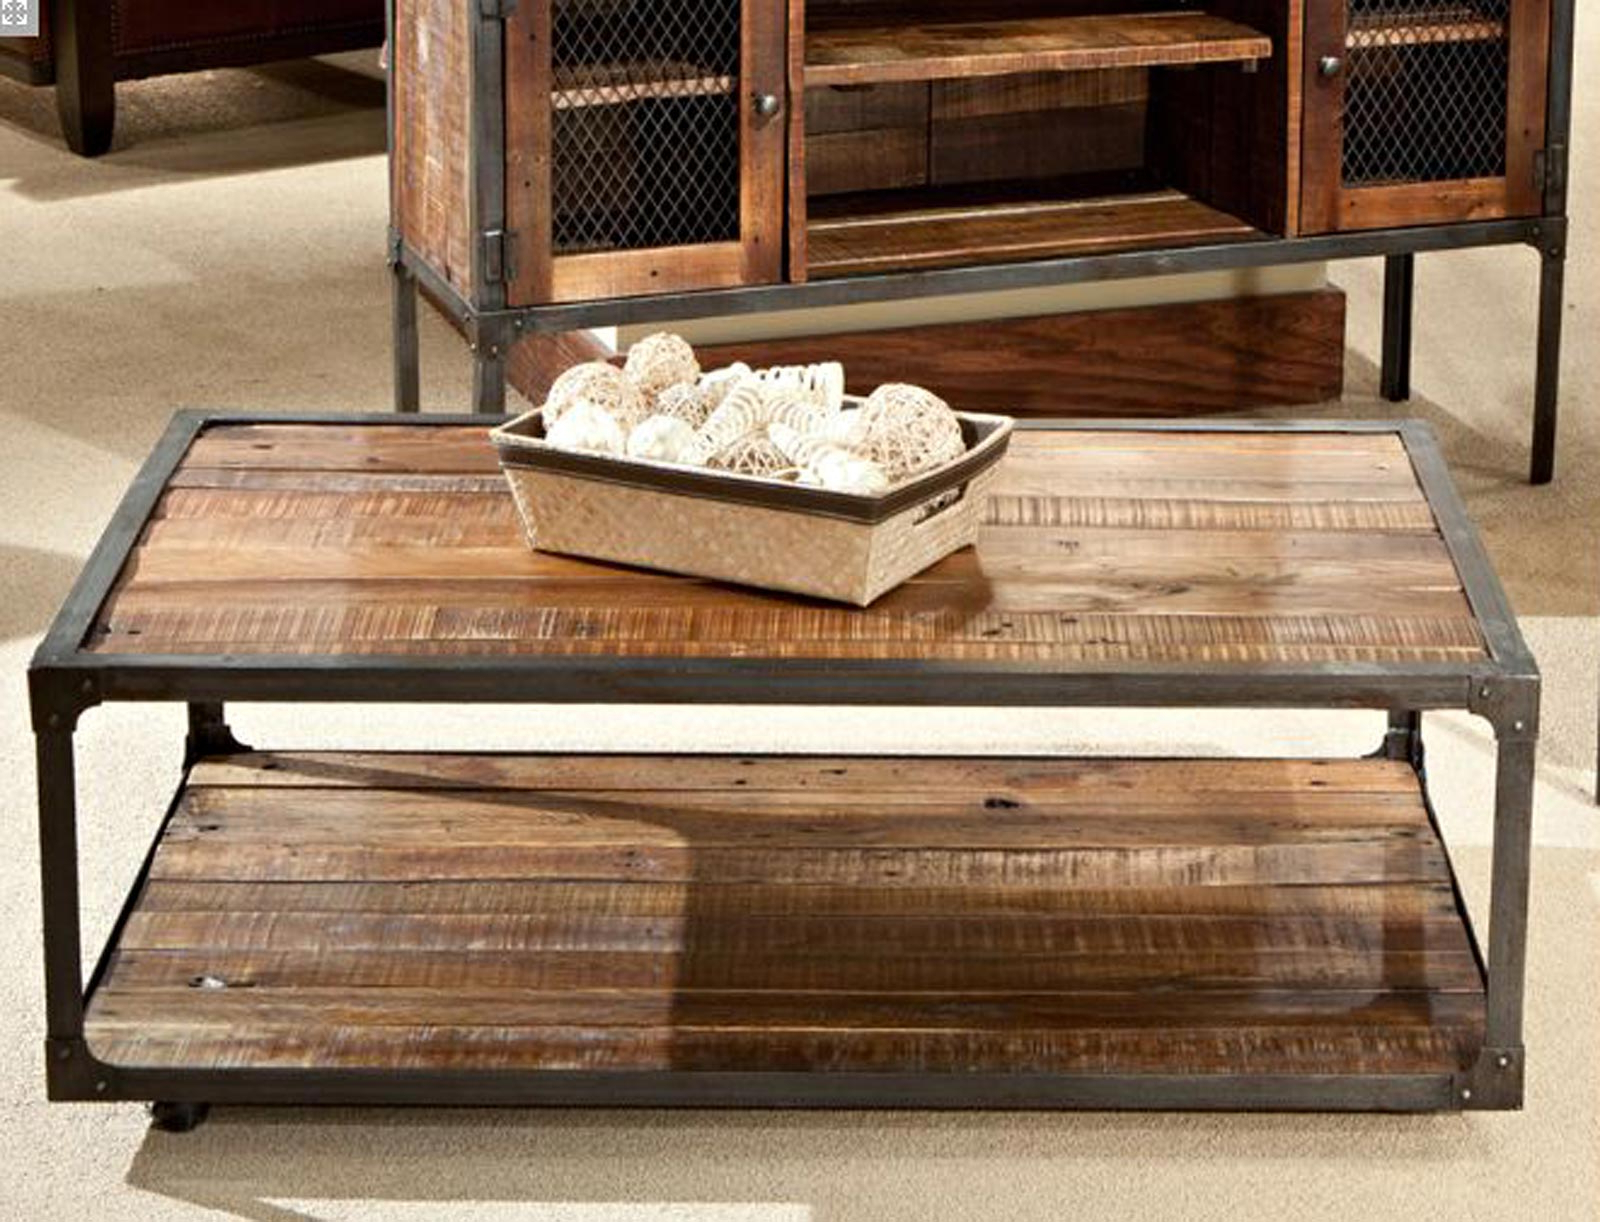 Most Recently Released Iron Wood Coffee Tables With Wheels Pertaining To Wood Metal Coffee Table Elegant Material – Thelightlaughed (View 4 of 20)